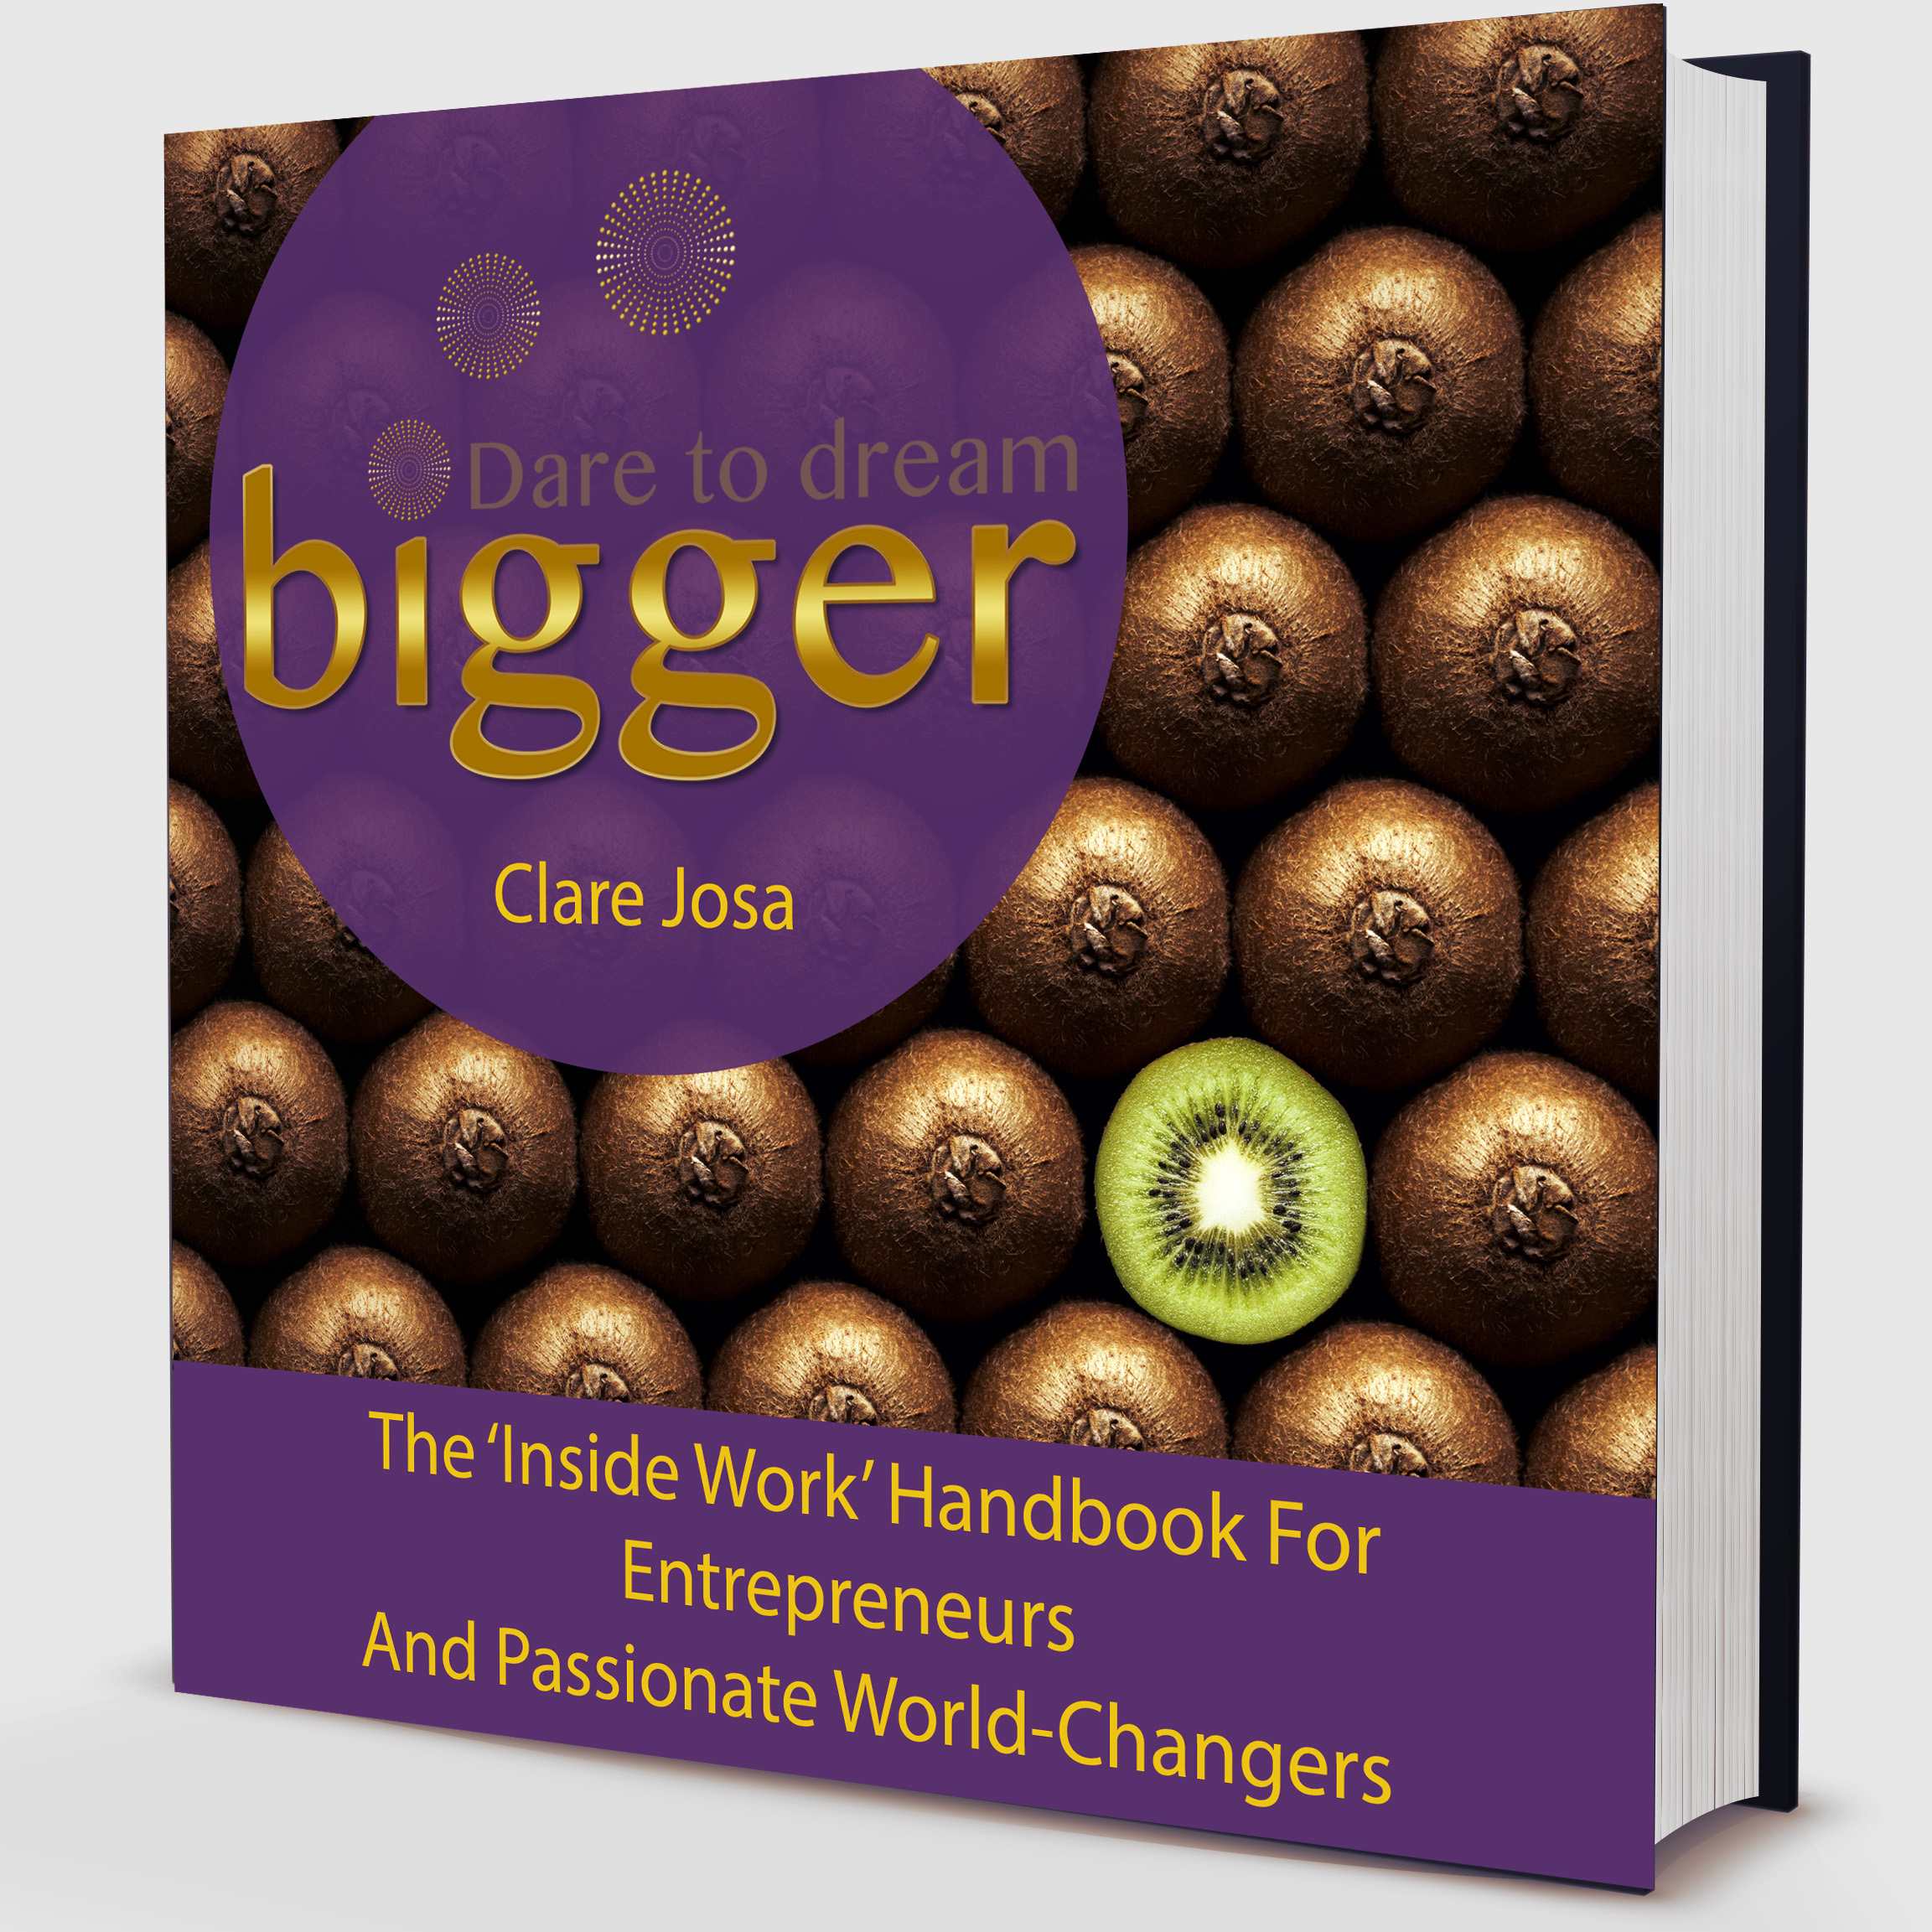 Dare to dream bigger handbook http://www.daretodreambigger.biz/book